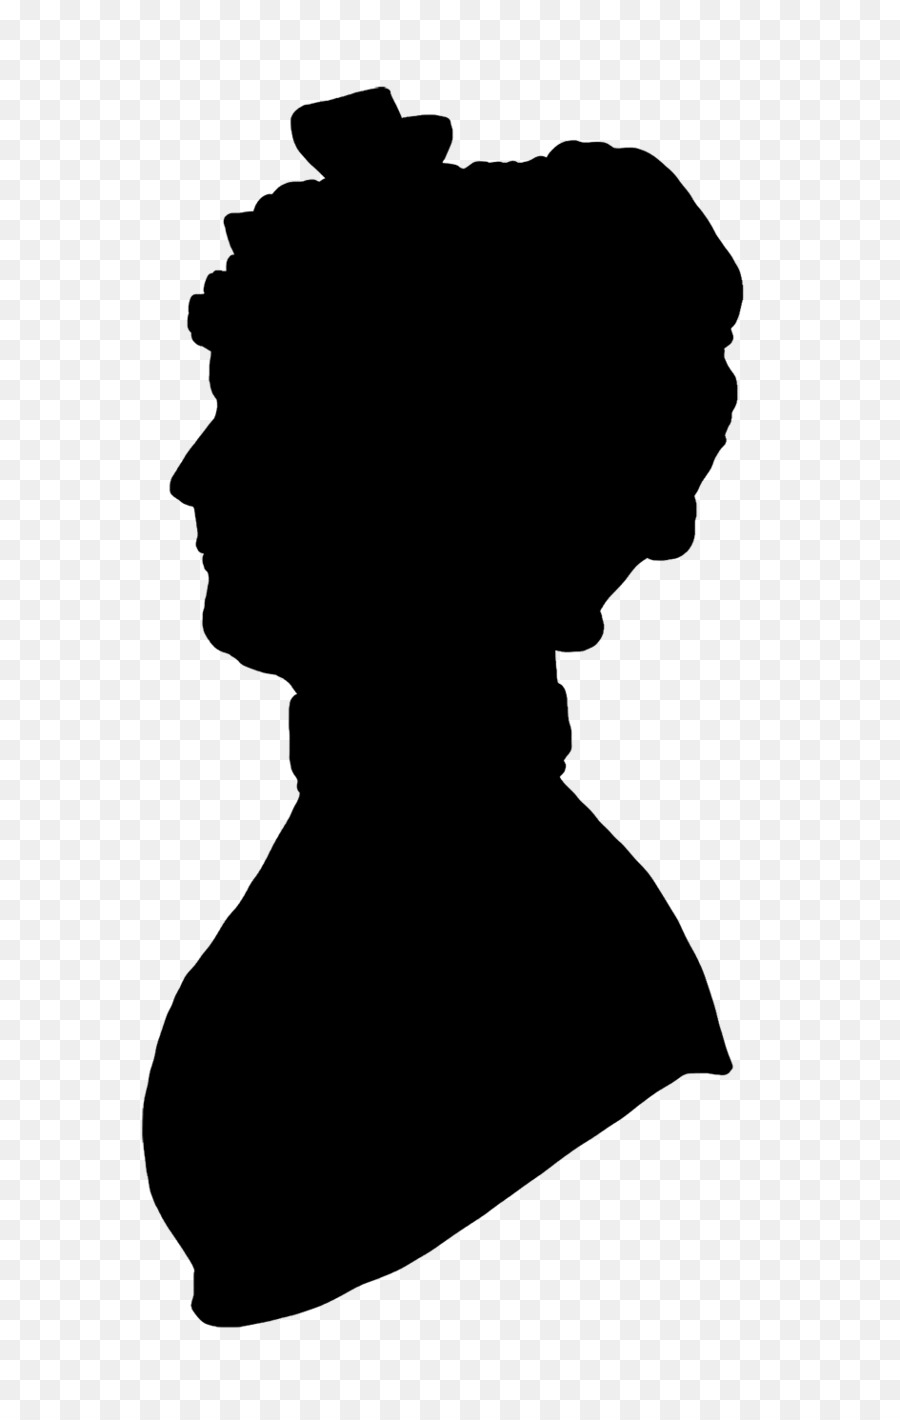 Victorian woman kissing clipart svg black and white download Woman Cartoon clipart - Woman, transparent clip art svg black and white download